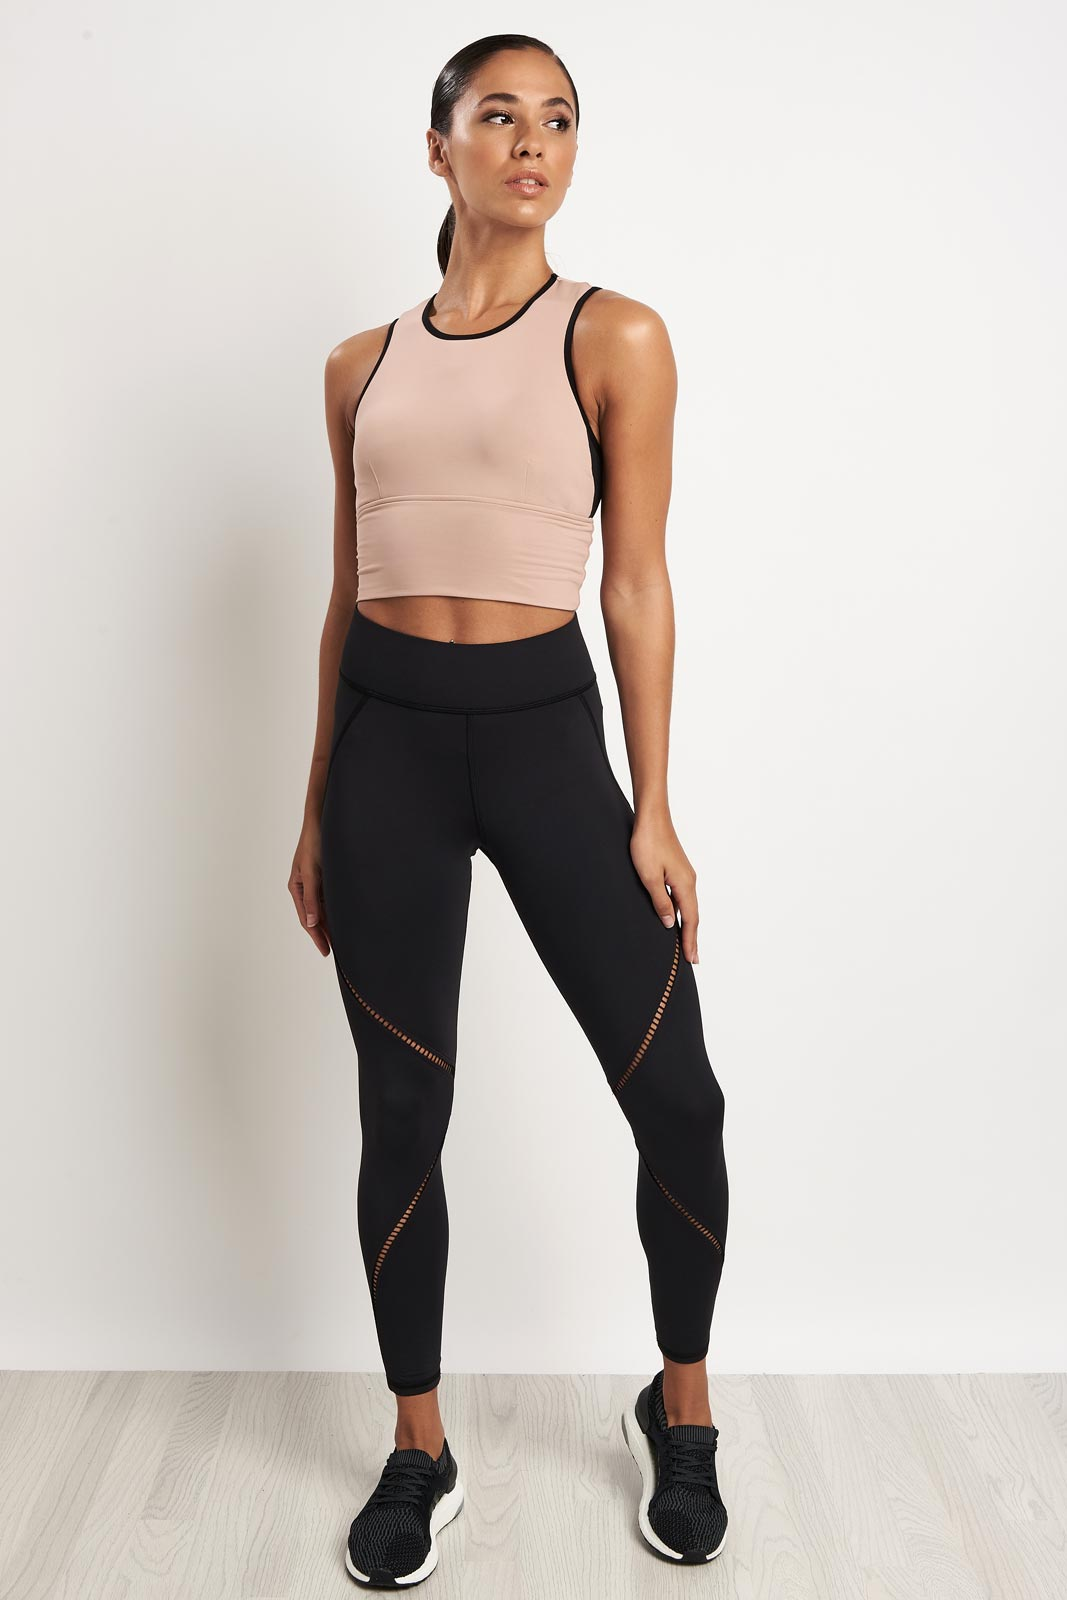 Michi Ignite Crop Top - Nude Pink image 4 - The Sports Edit